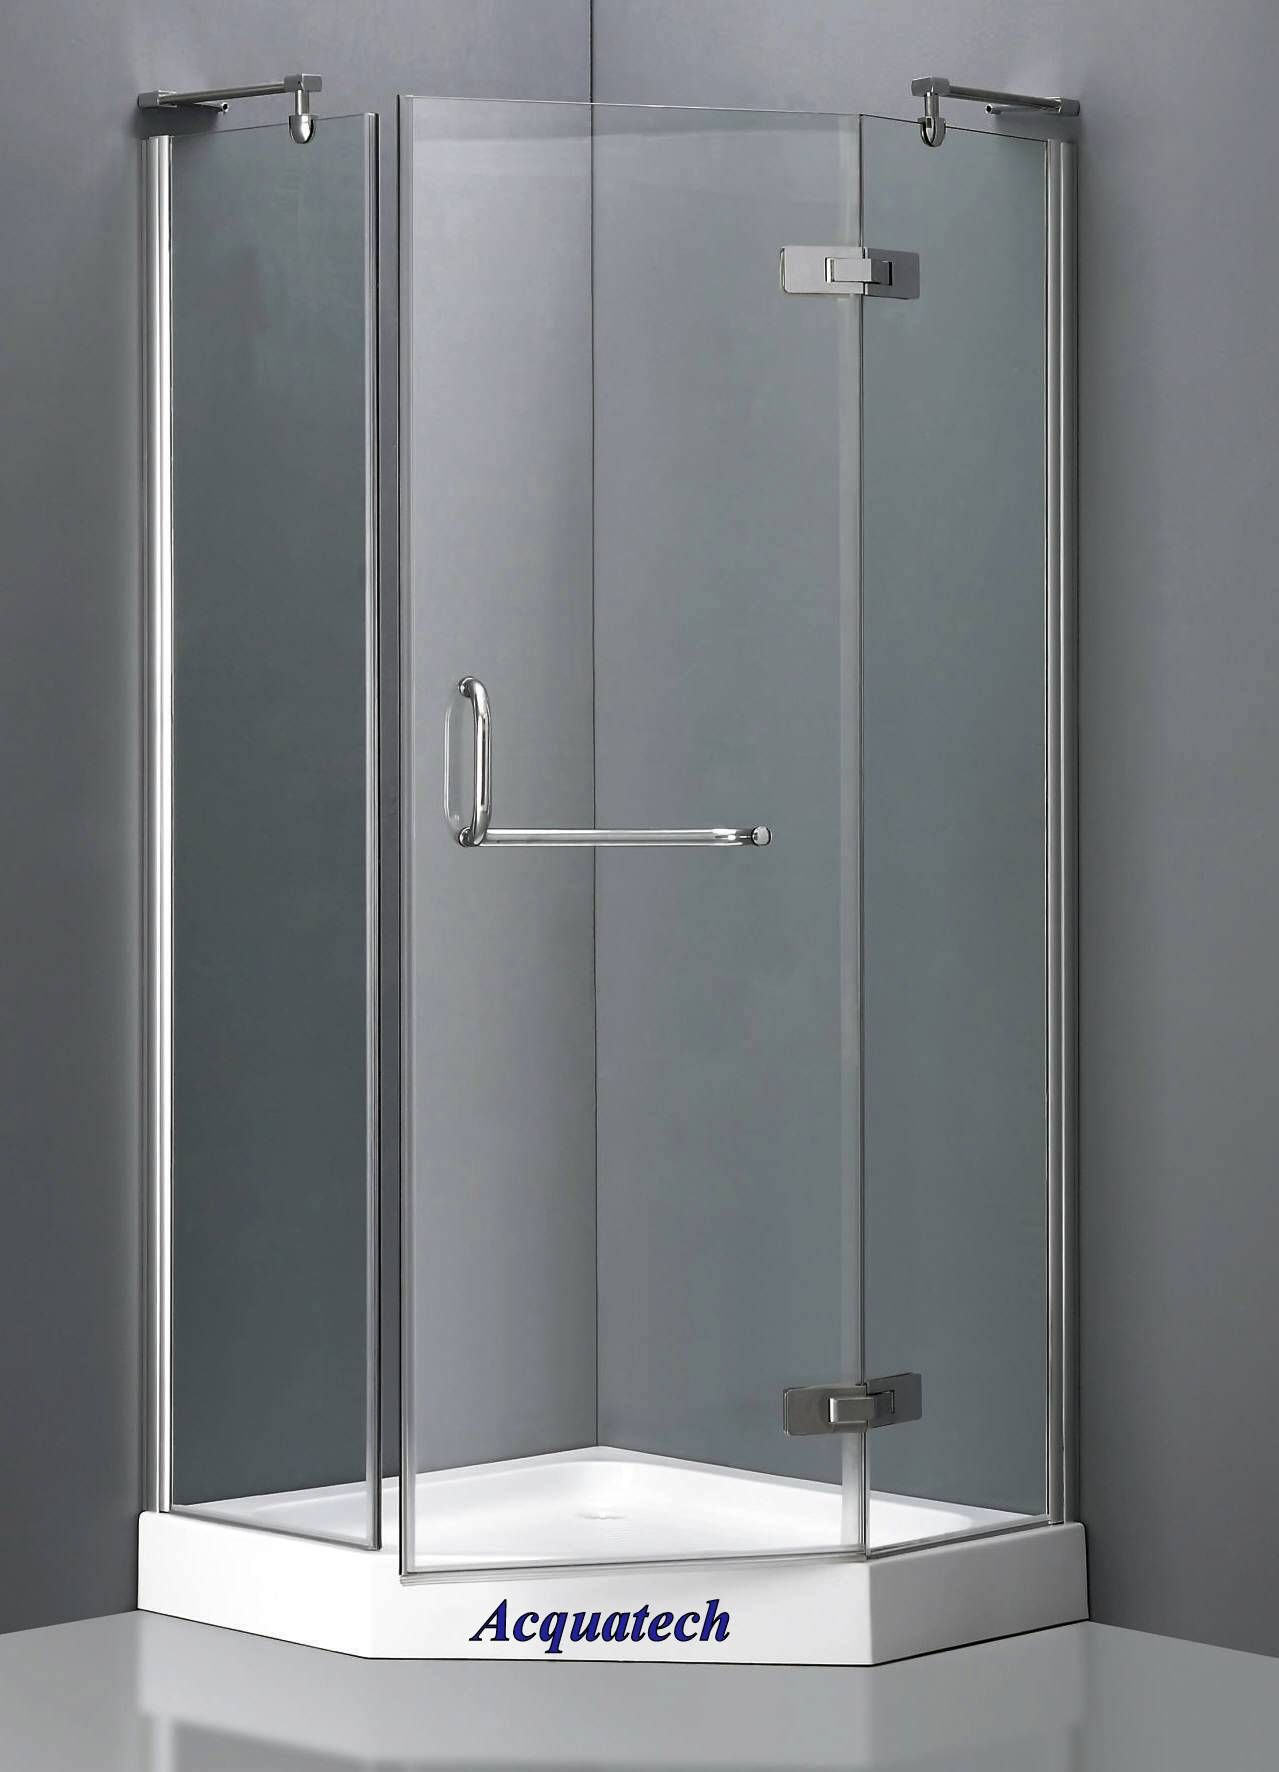 Basic shower stall. 3'x3' Corner shower, Glass shower